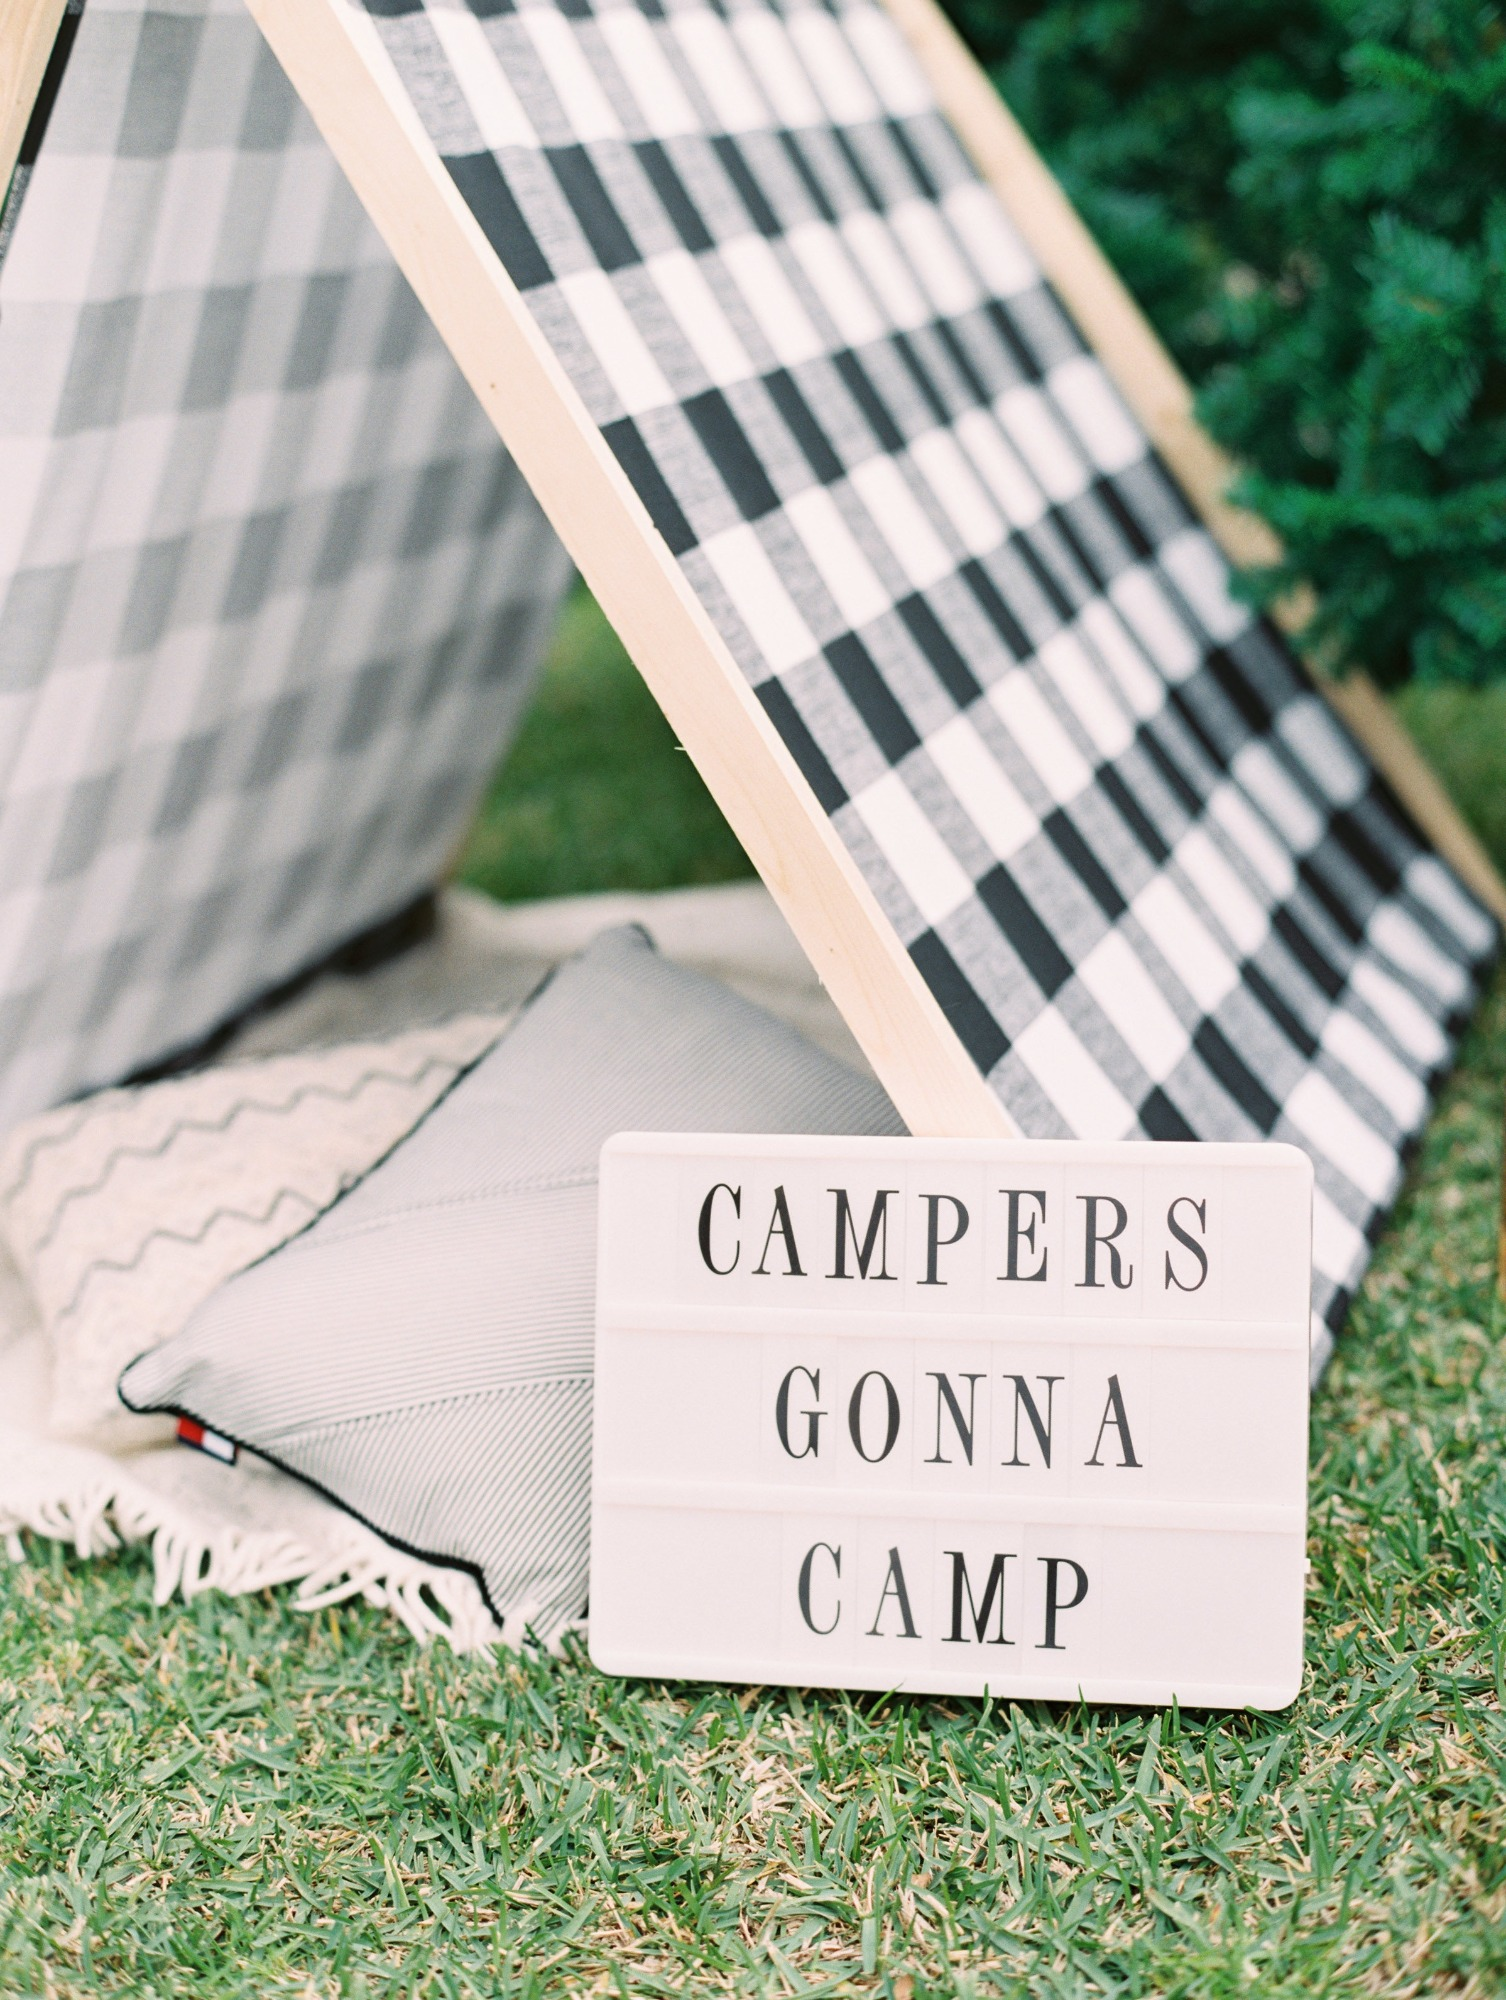 Campers Gonna Camp Letter Board and Tent from Classic Camping Party Styled by Deets & Things | Black Twine